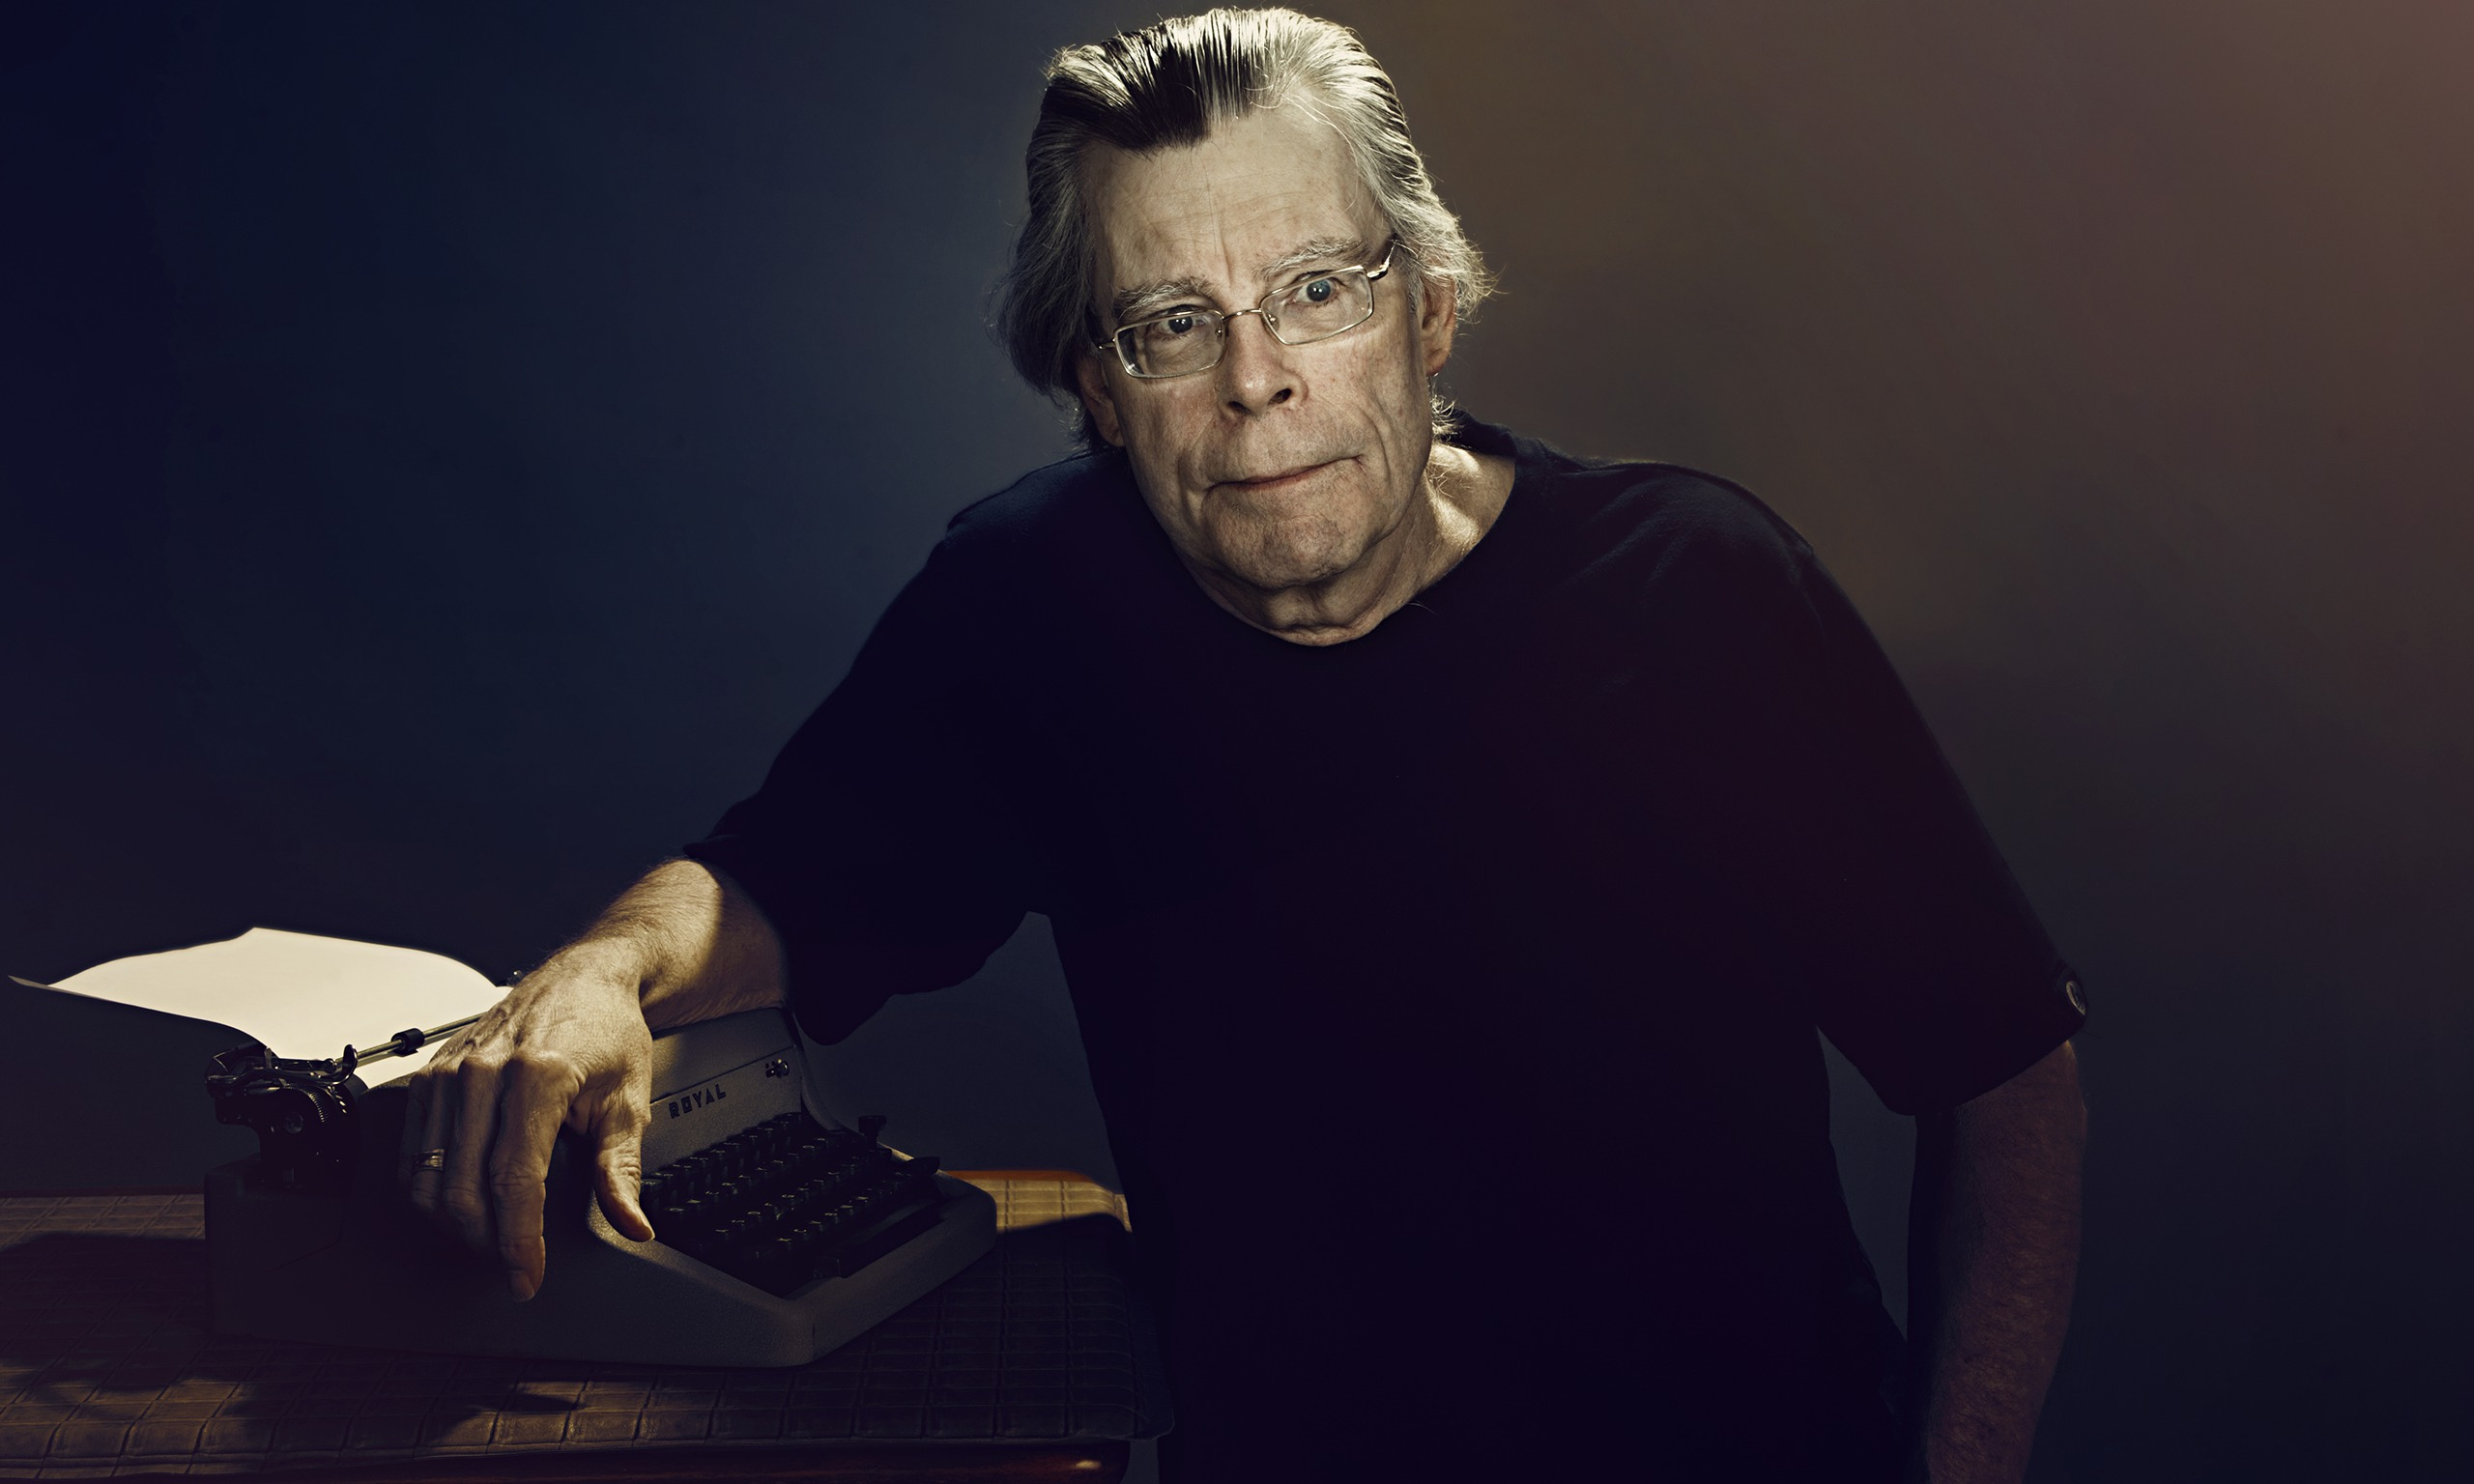 Stephen King Wallpapers Images Photos Pictures Backgrounds Stephen King